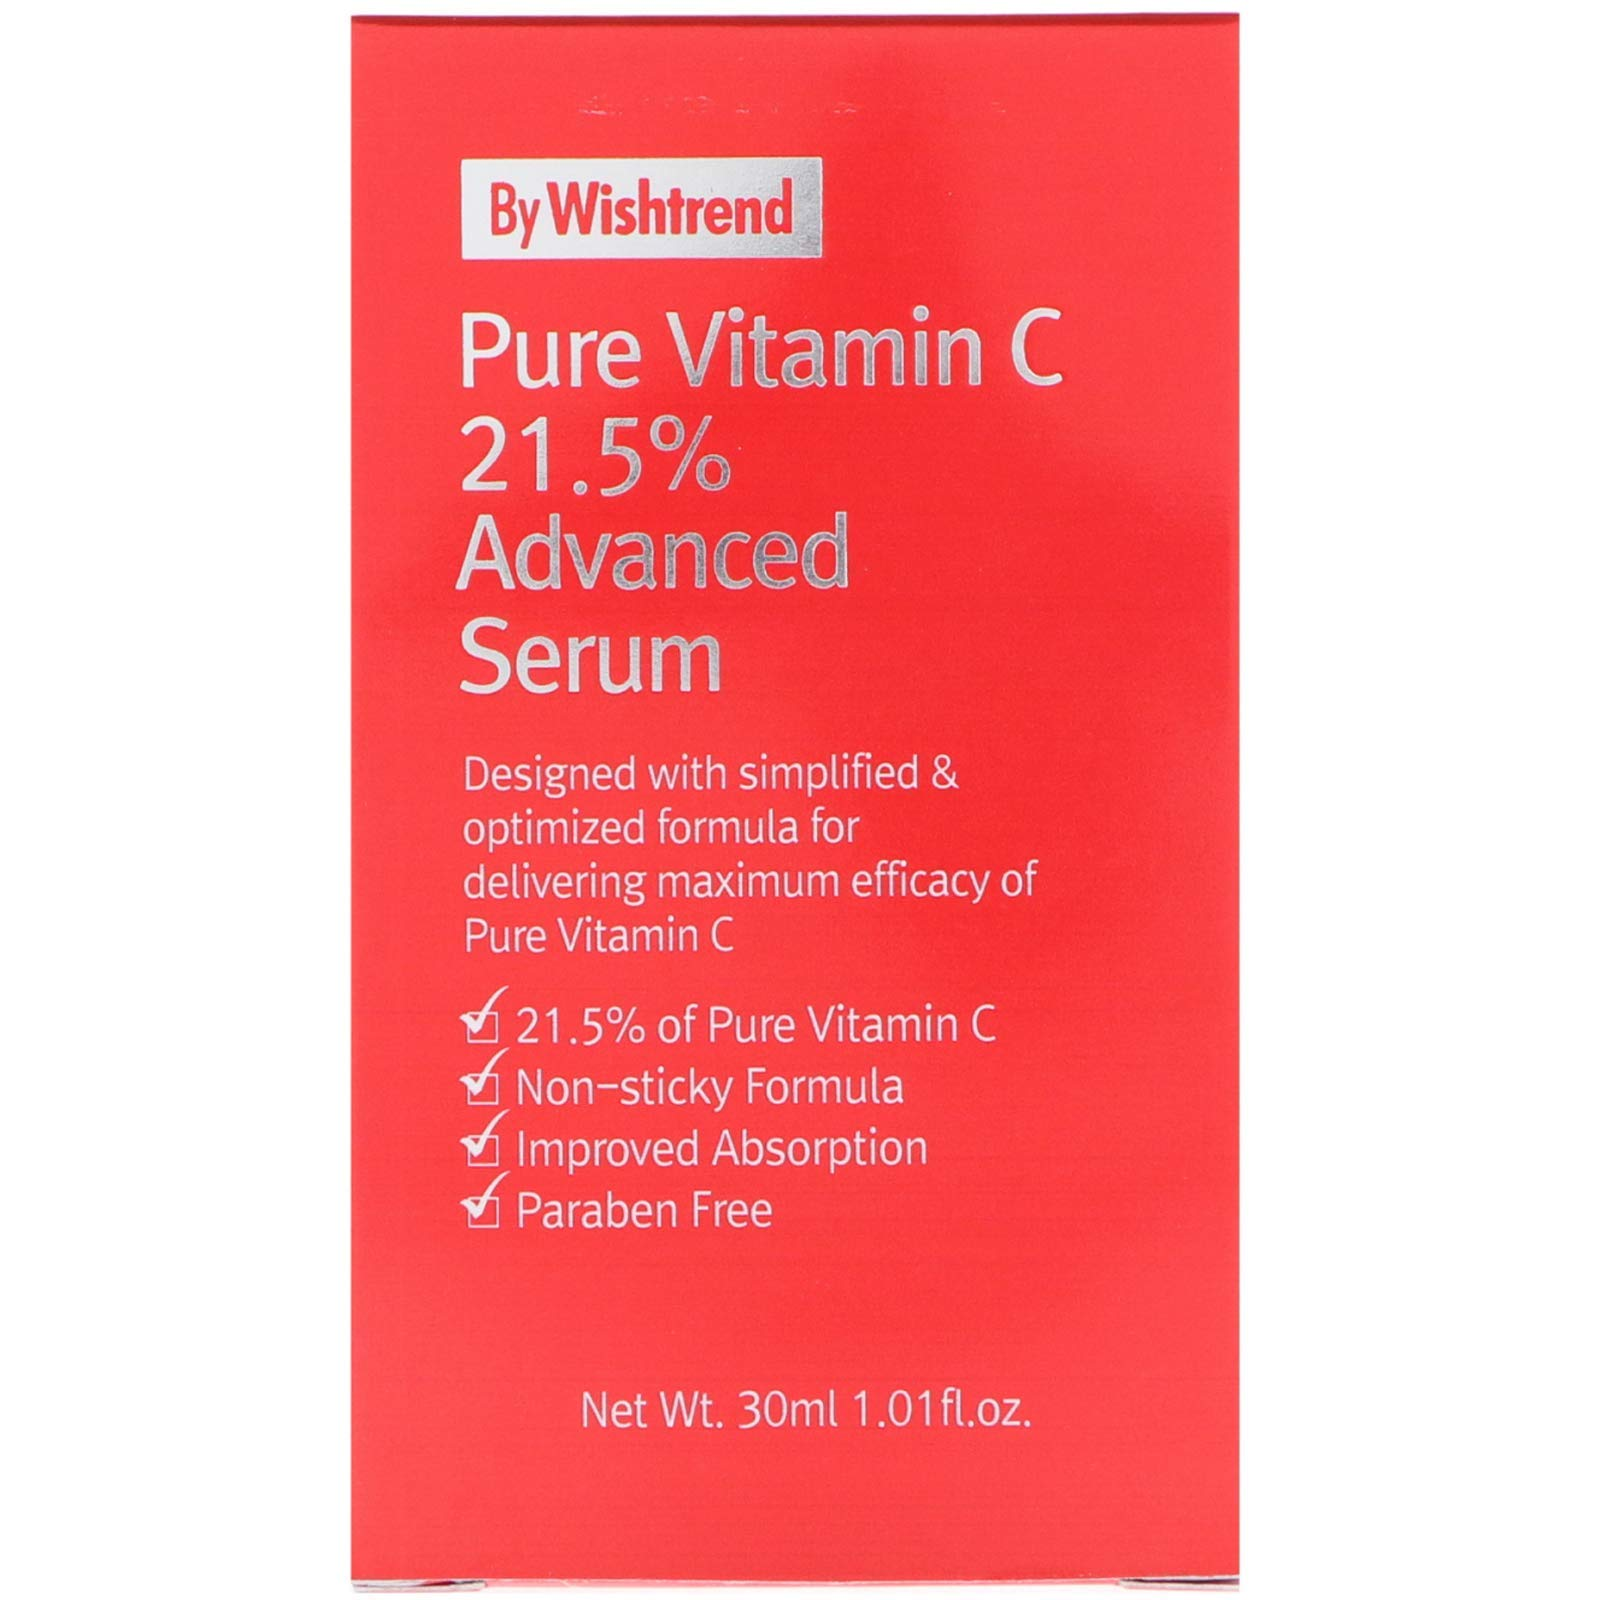 [By Wishtrend] Pure Vitamin C21.5% Advanced Serum 30ml, Clear and Healthier Skin